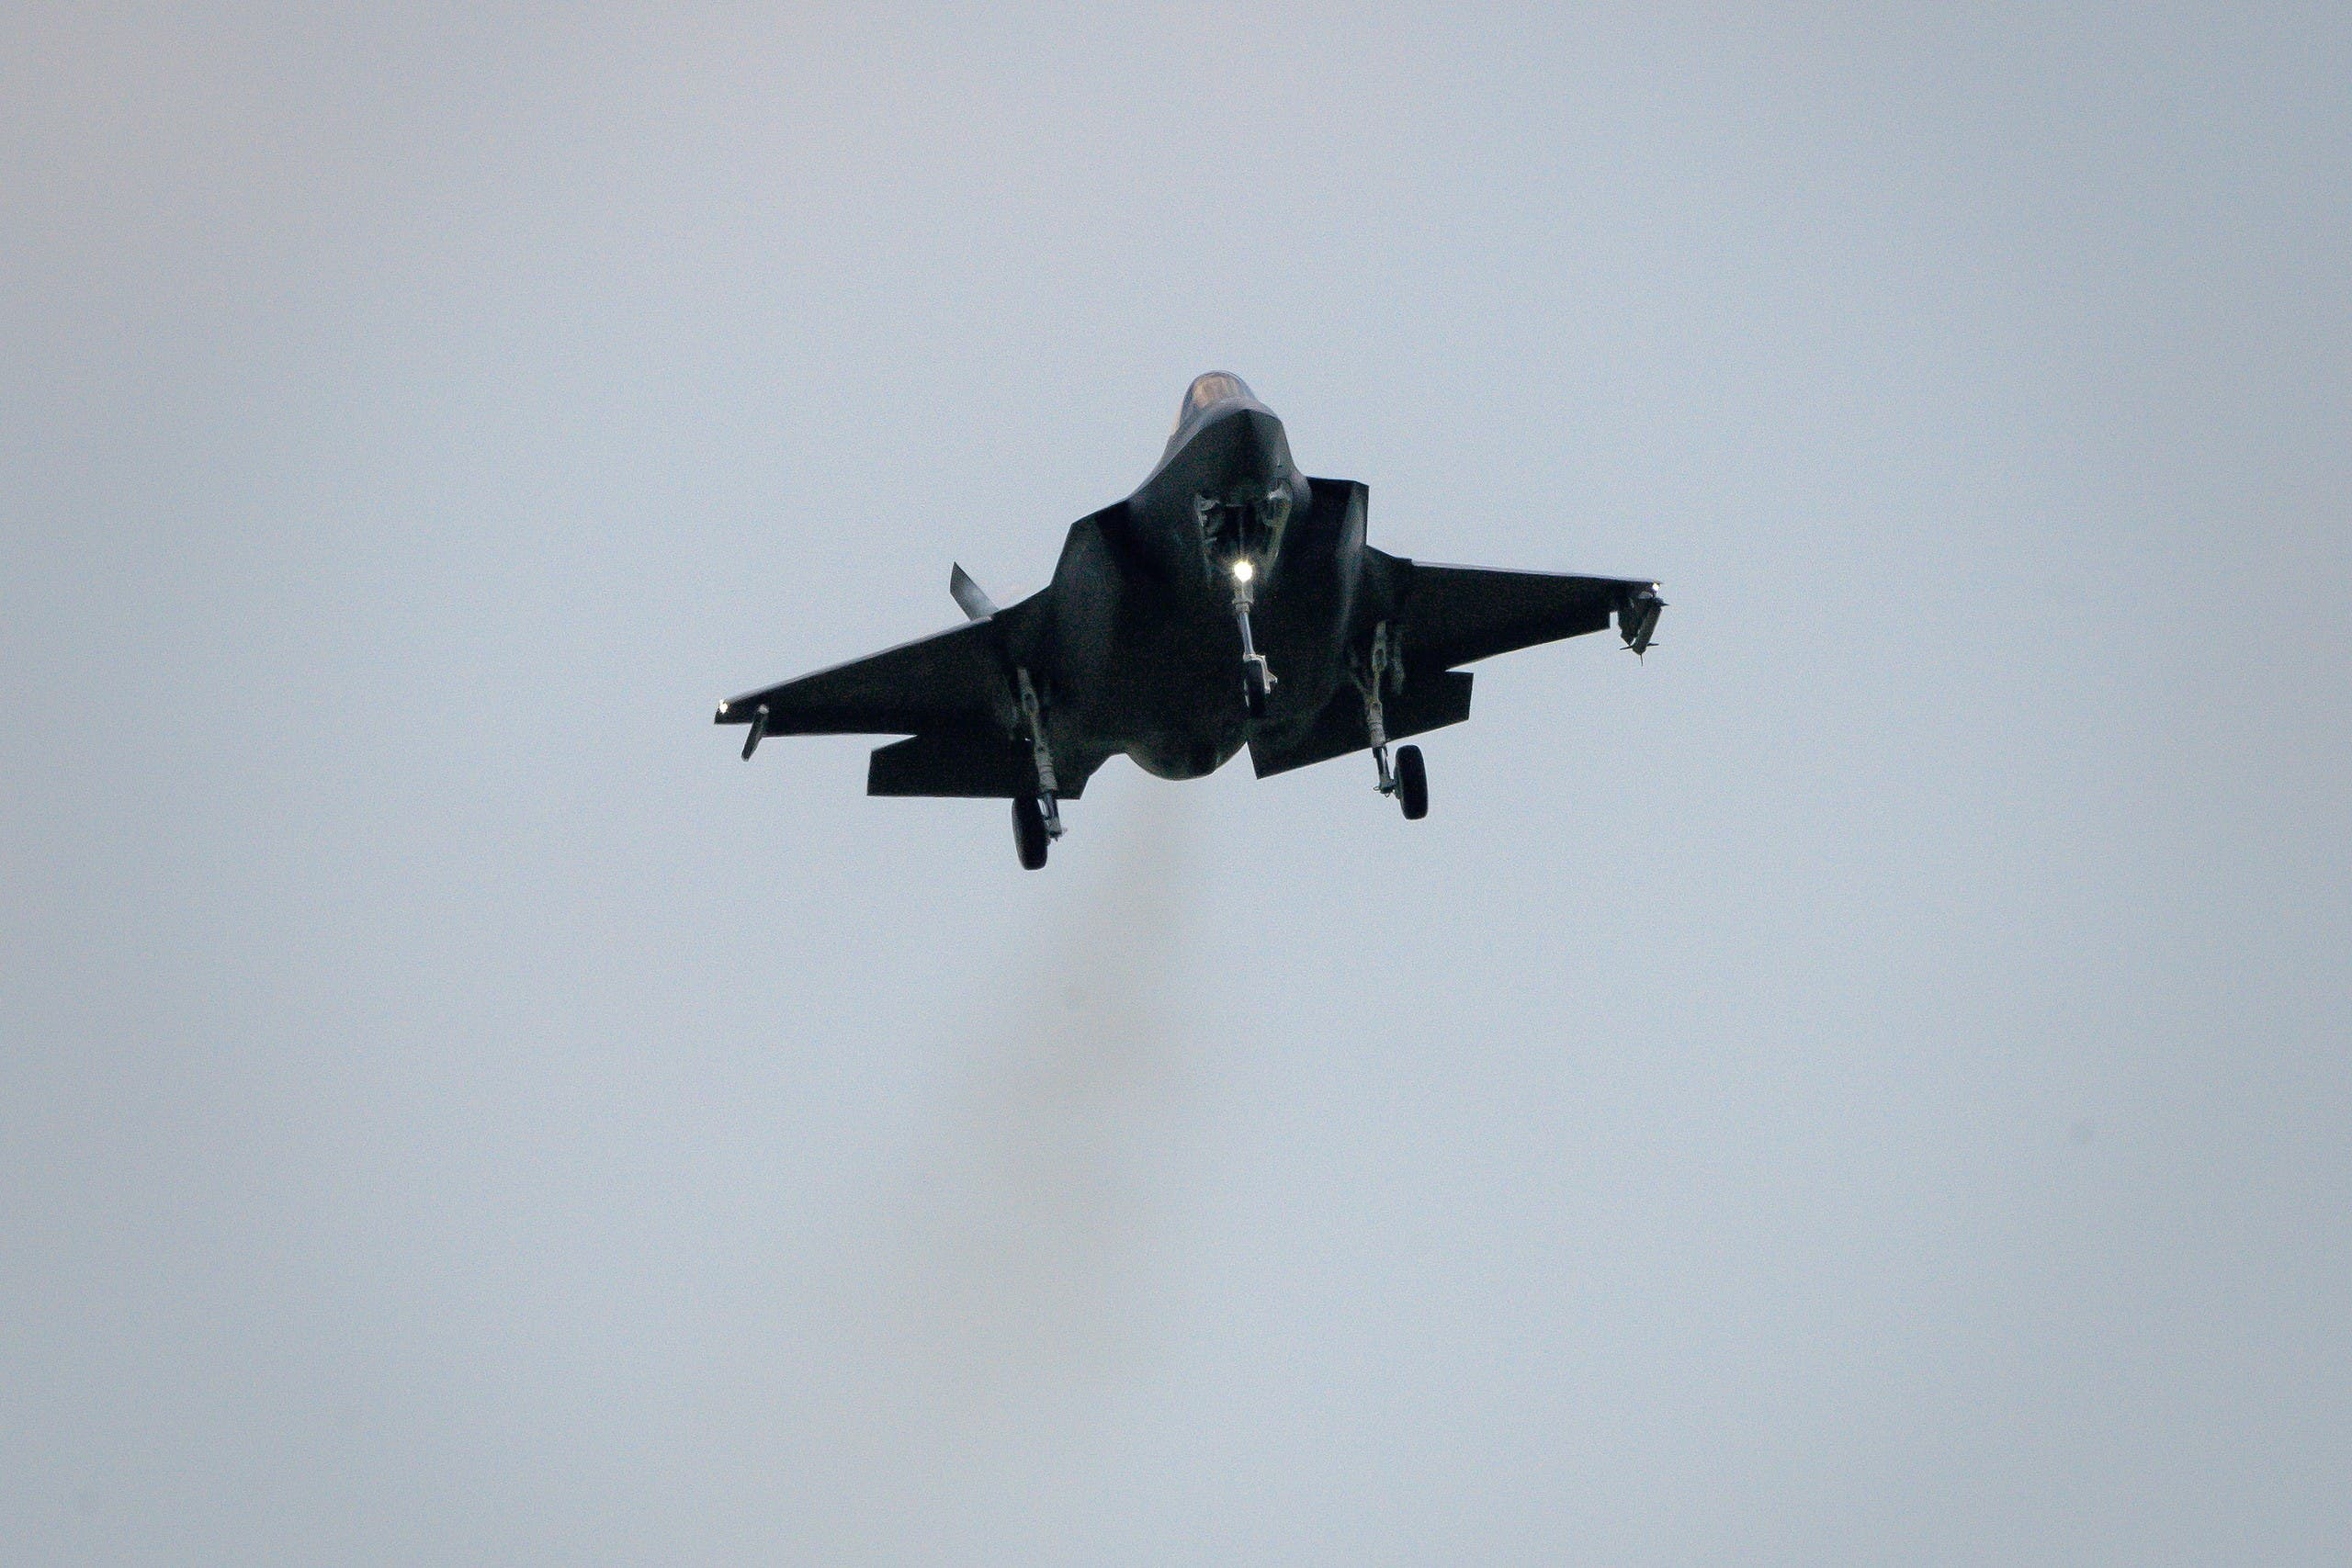 An F-35 Lightning II fighter jet is landing at the Payerne Air Base during flight and ground tests. (File Photo: Reuters)